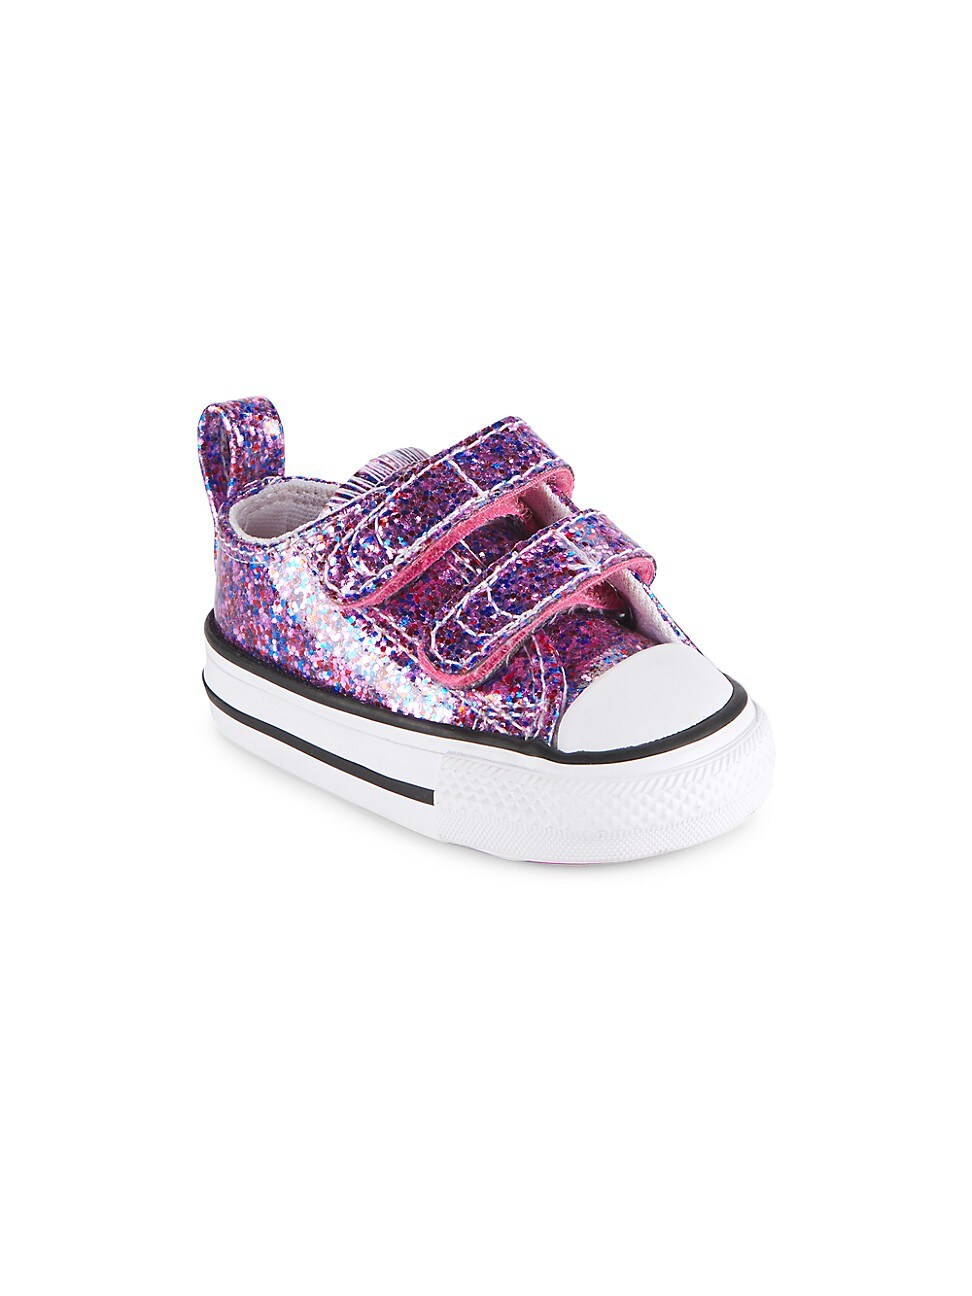 Converse Glitters BABY'S & LITTLE GIRL'S GLITTER GRIP-TAPE LOW-TOP SNEAKERS